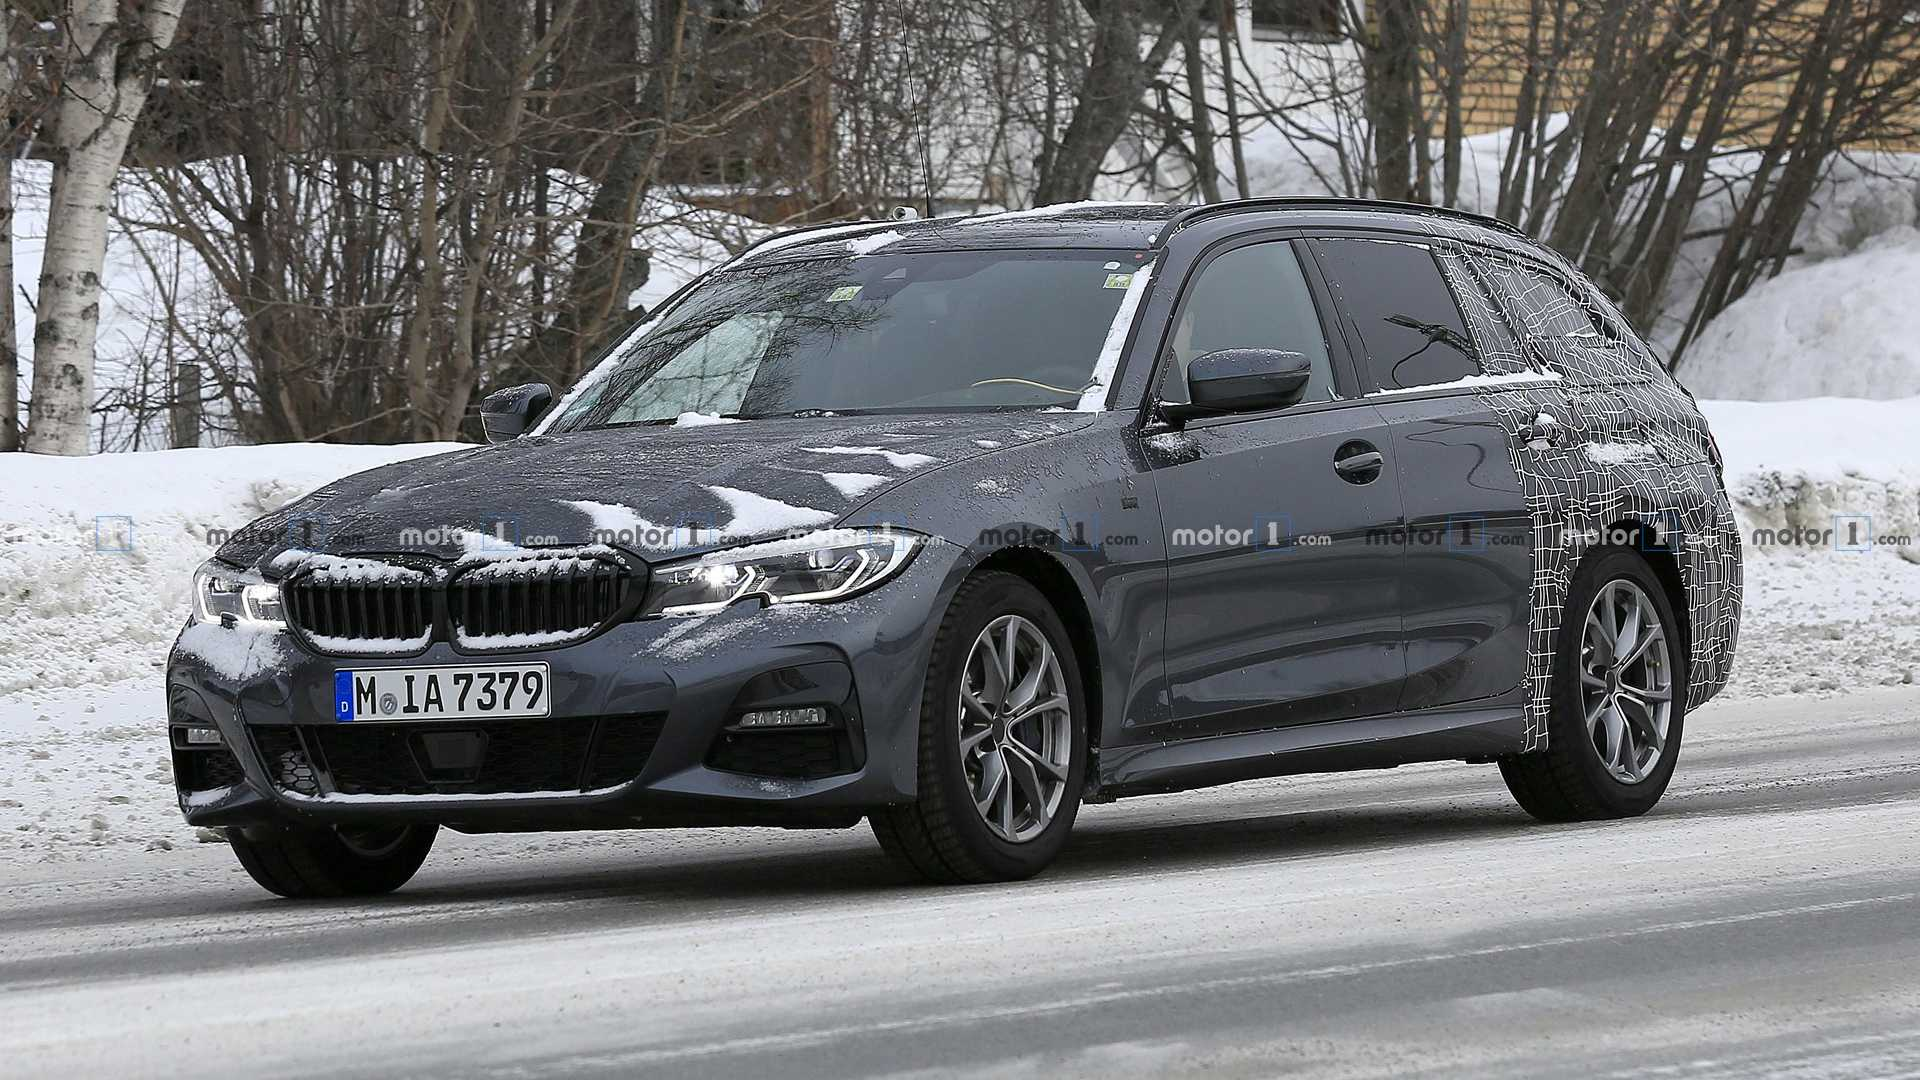 New Bmw 3 Series Touring Wagons Its Tail During Final Testing